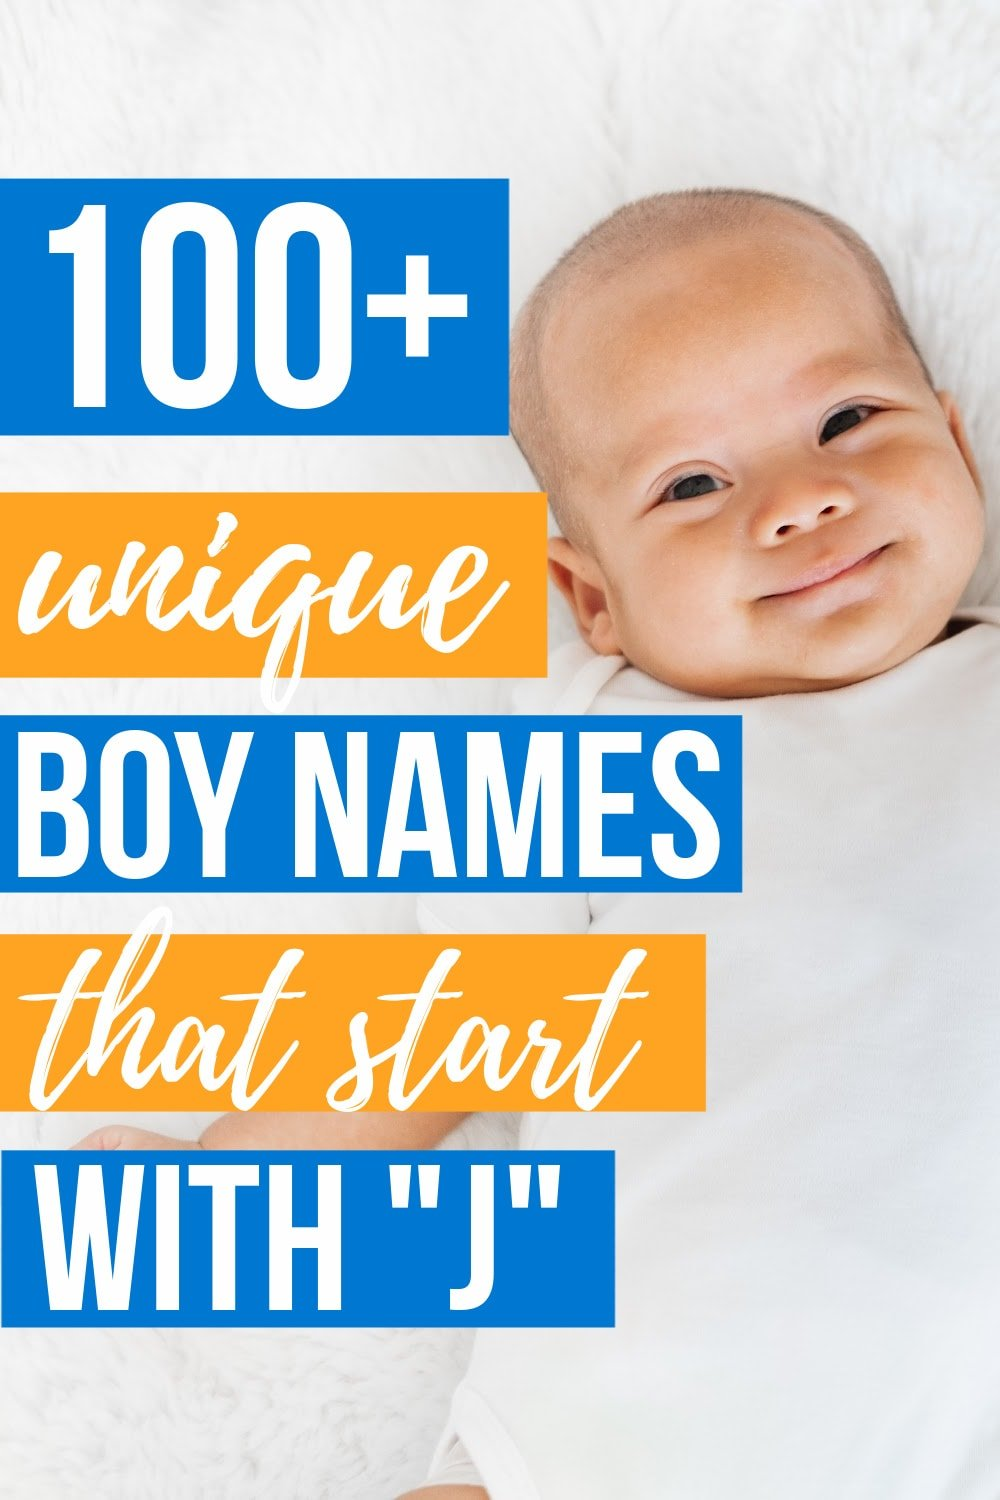 BOY NAMES STARTING WITH J